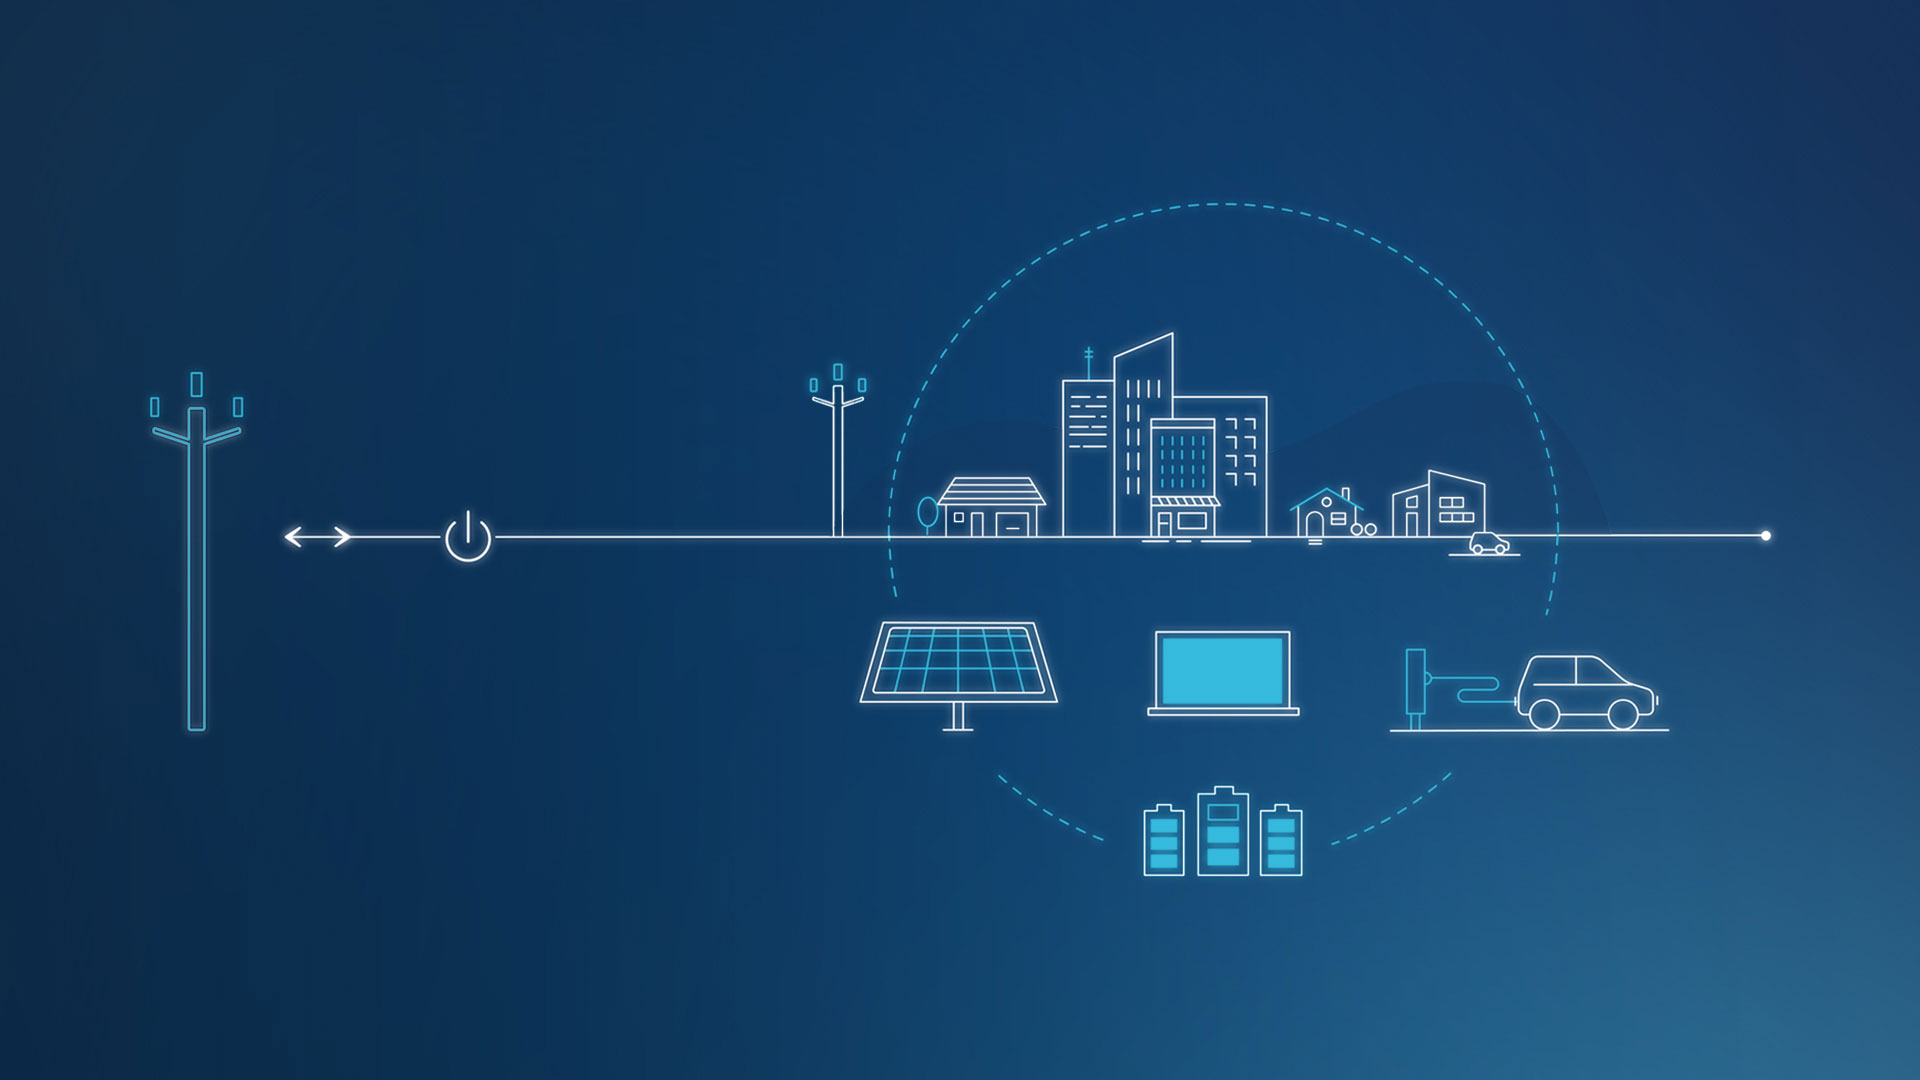 The microgrid will supply a neighborhood, in whole or in part, in parallel to the main grid.